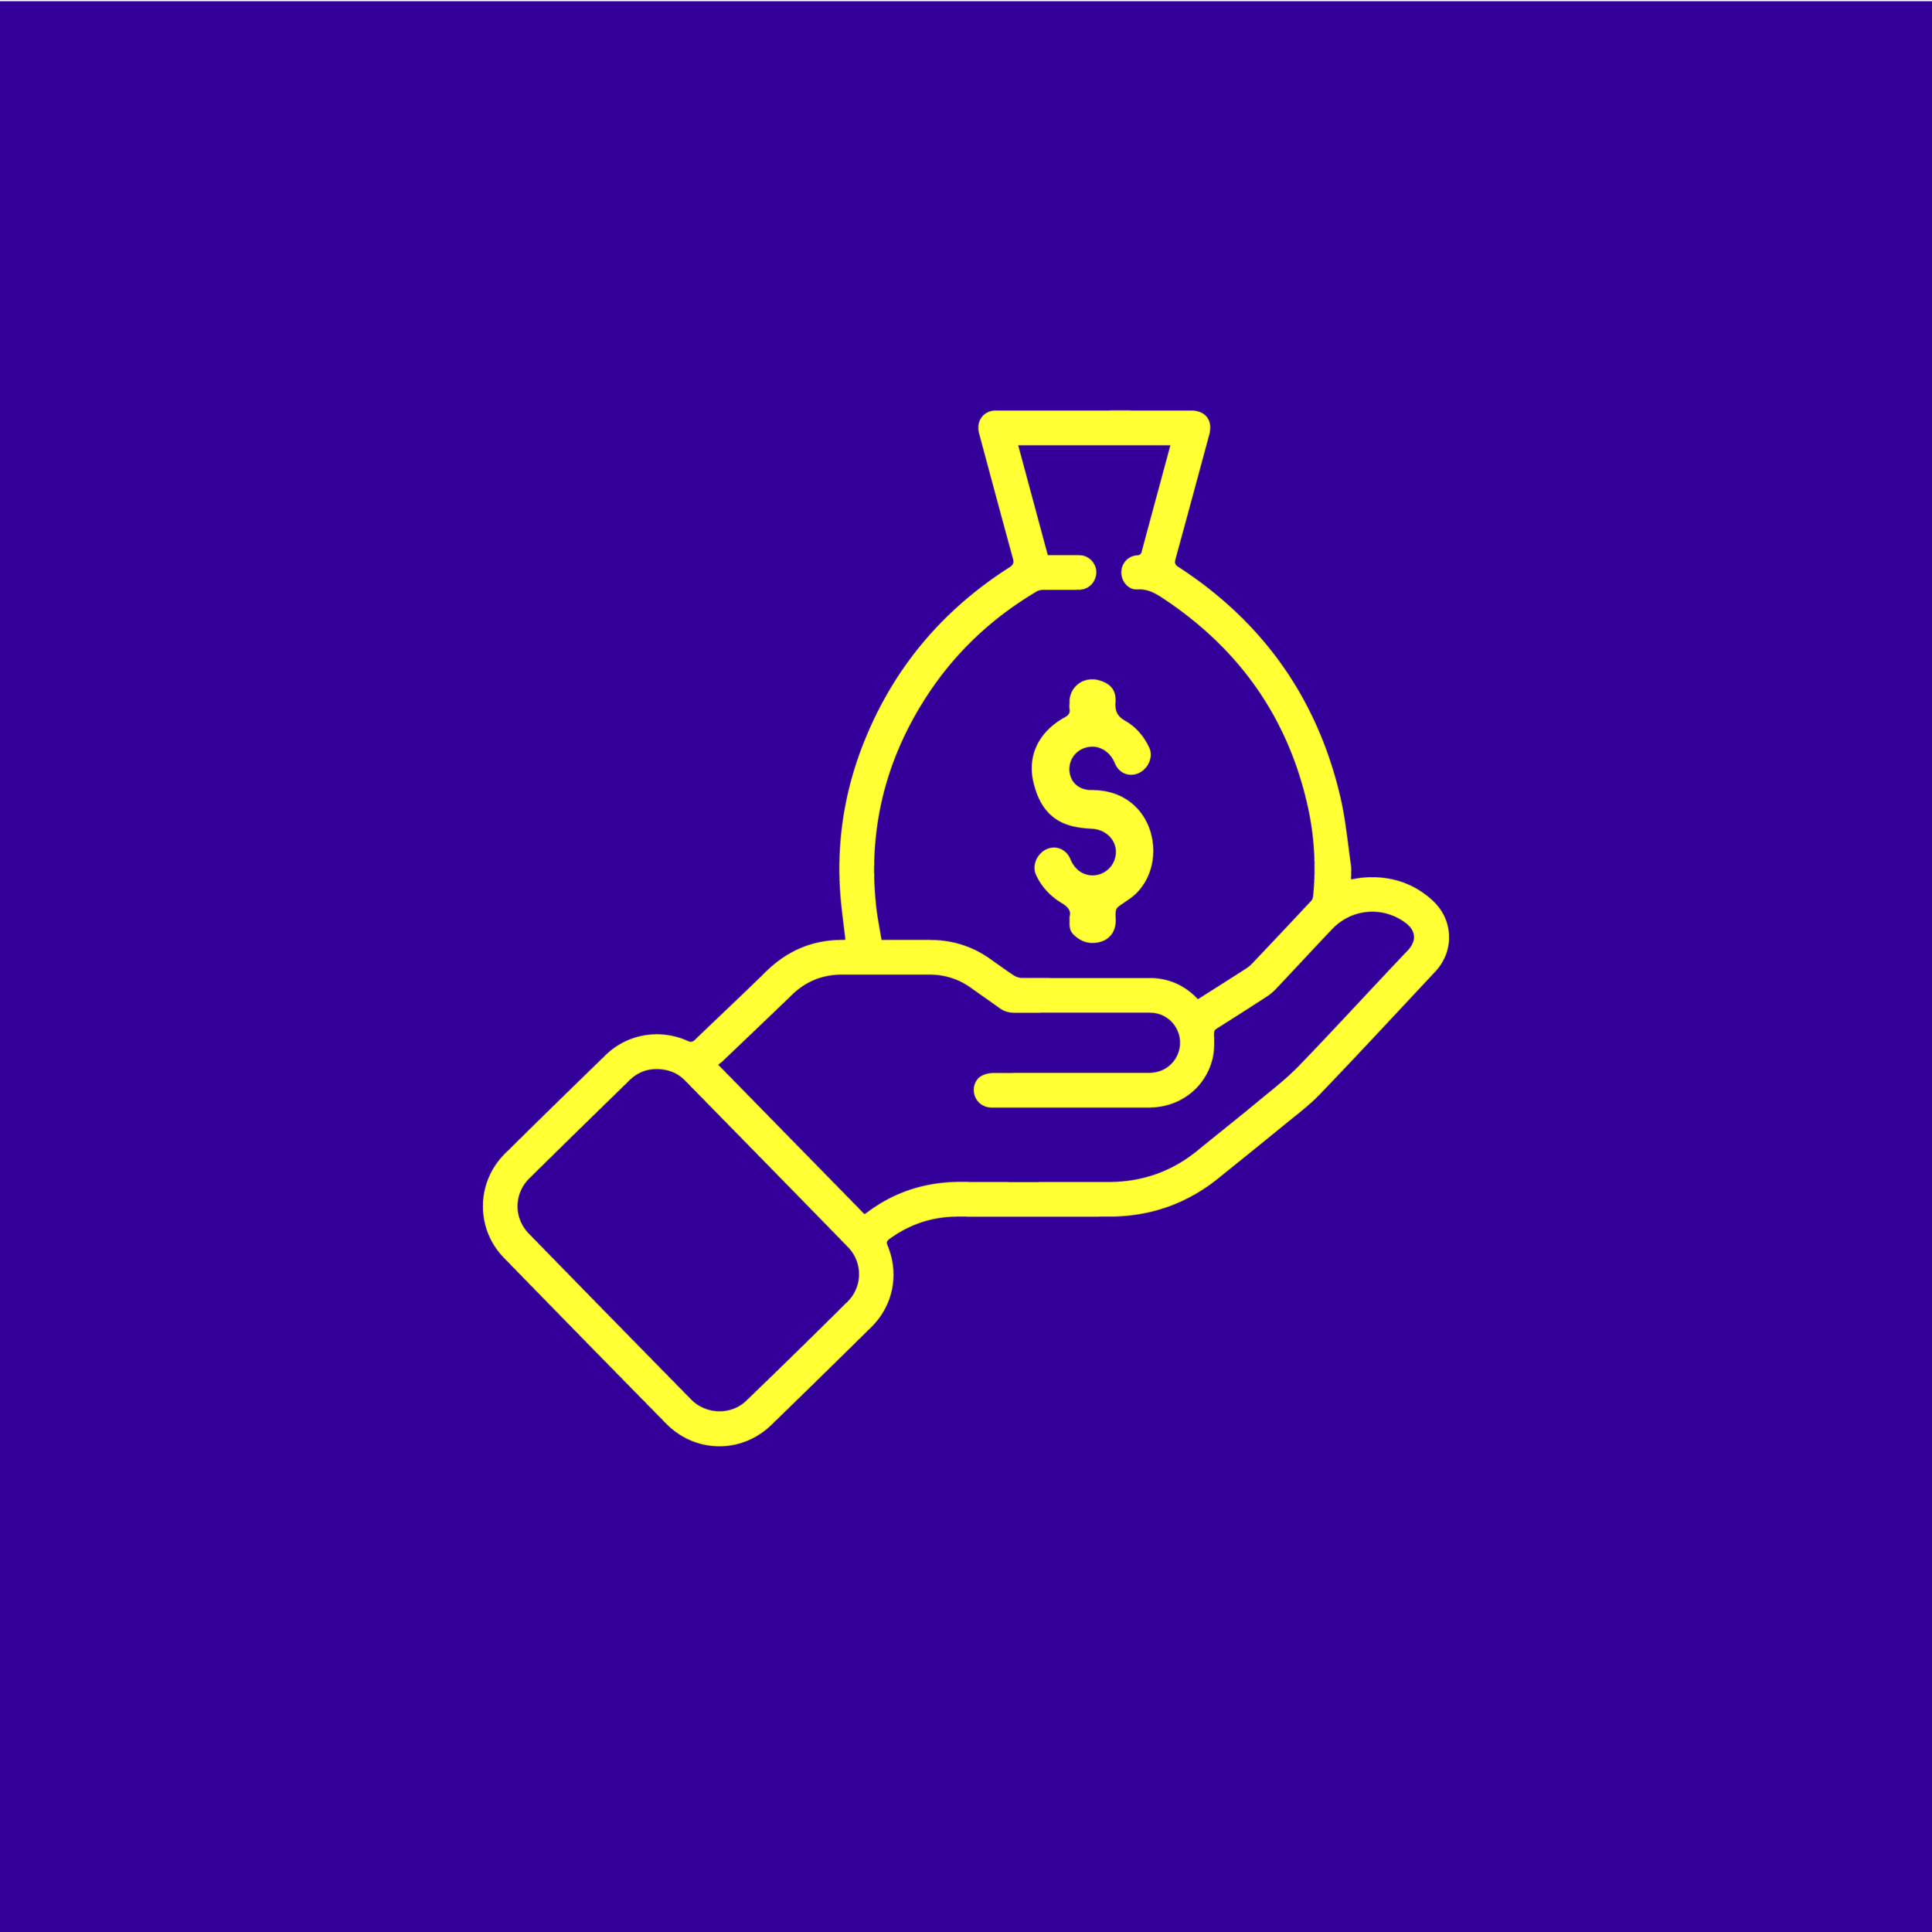 Fund Tech Scholarships - Contribute to the #WeGotYou Fund — One full #LevelUpLA scholarship is valued at $120 for our intro trainings and $480 for our intensive trainings. You can also fund individual hours of training at donation increments of $20.